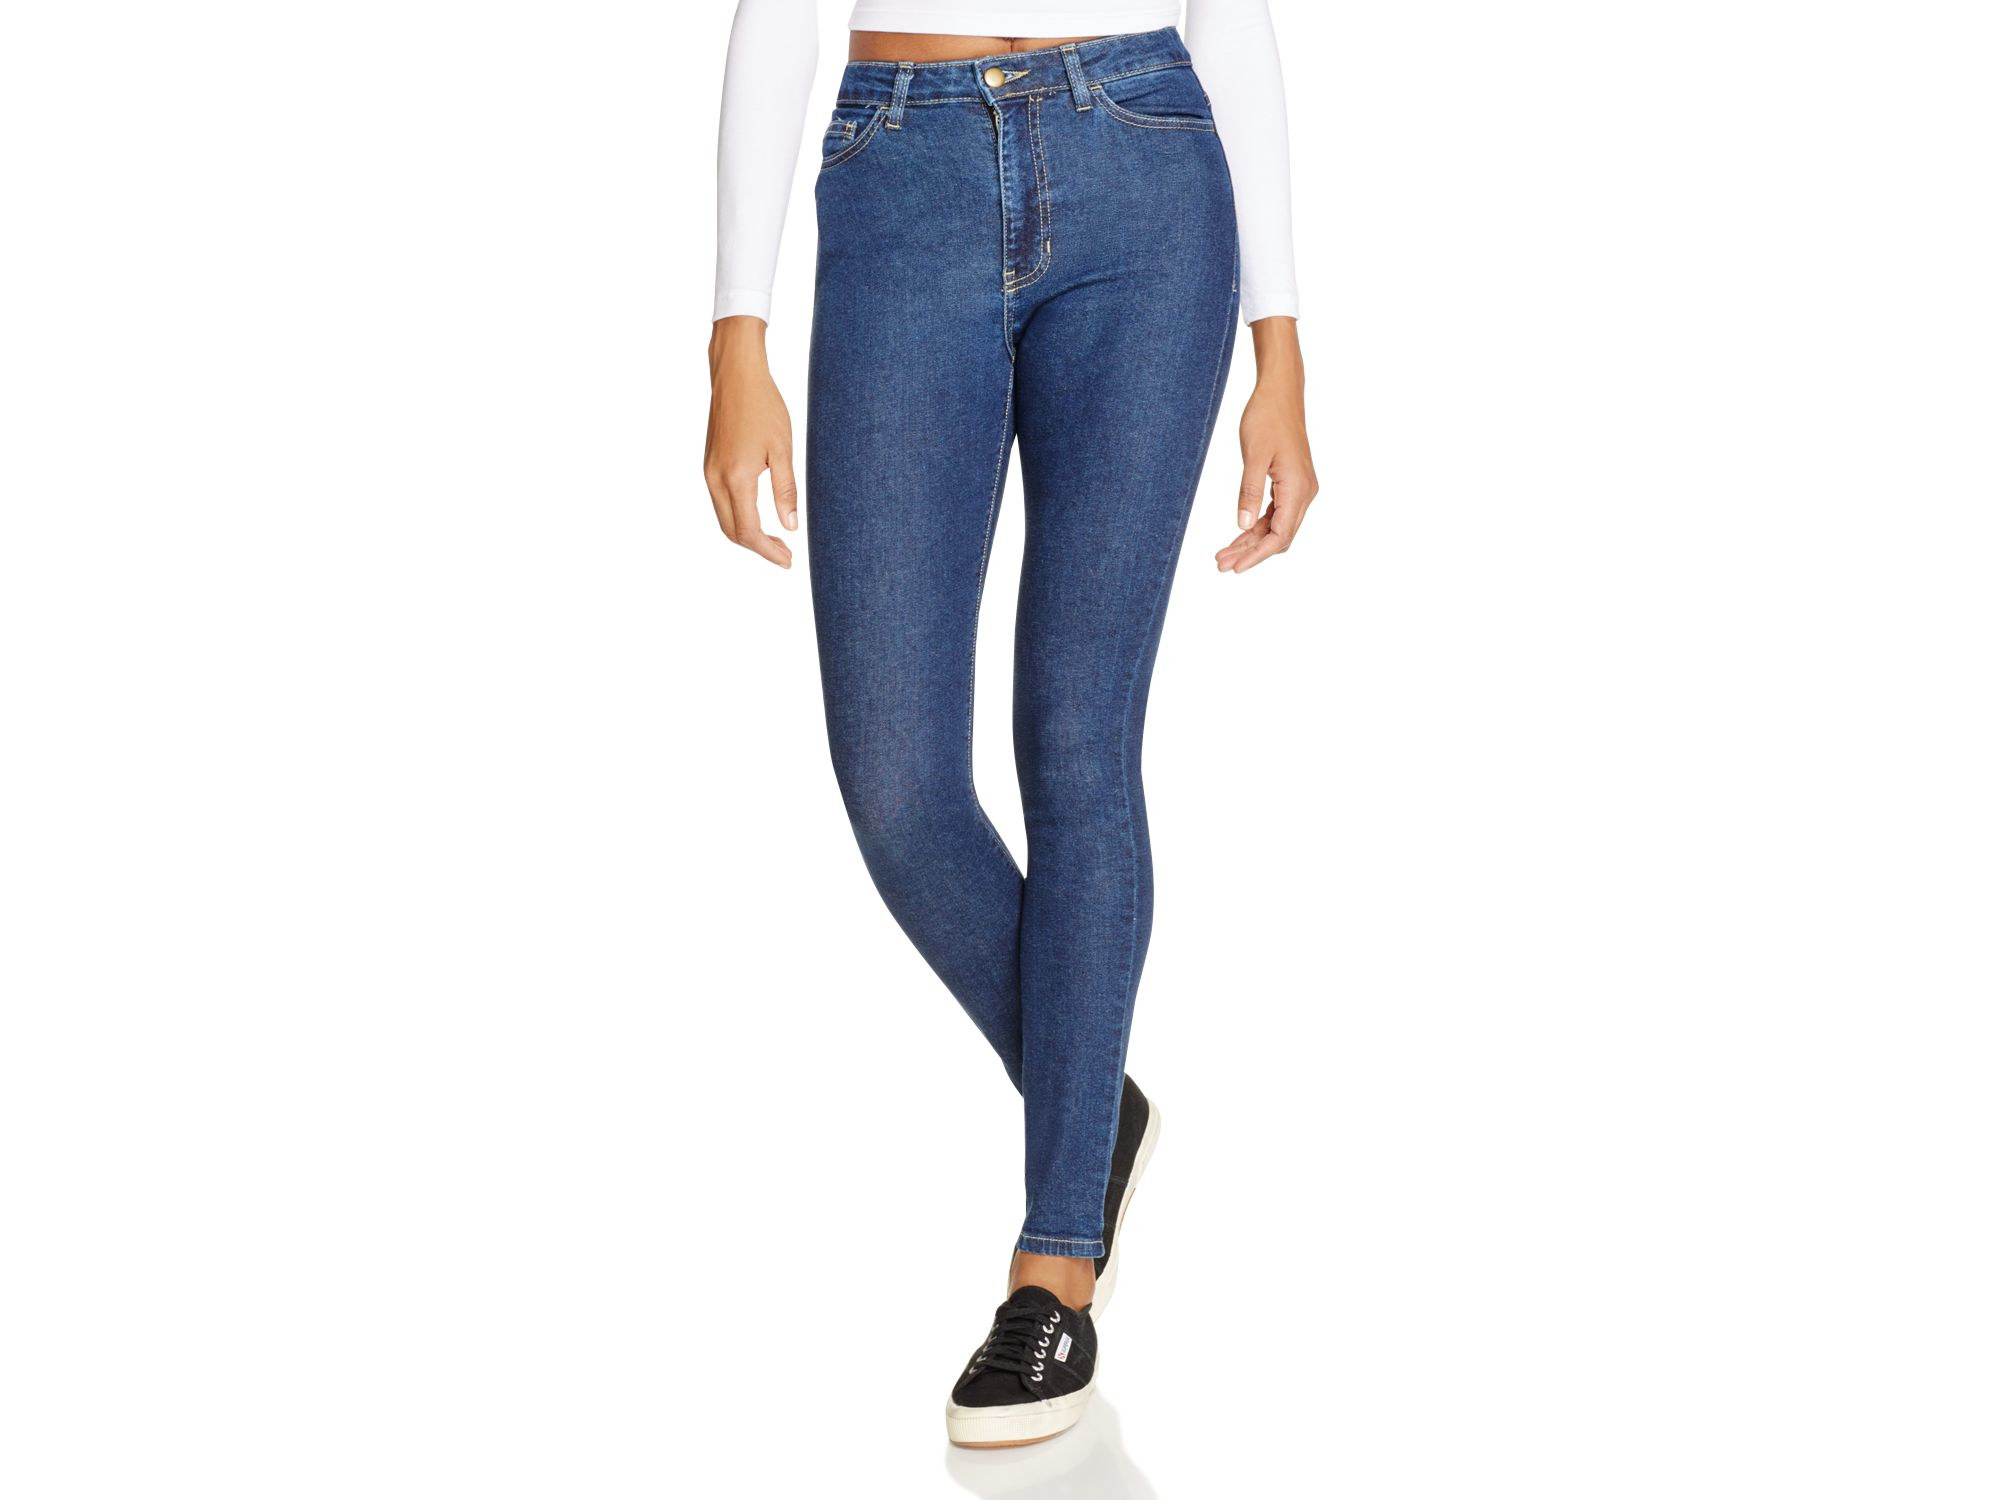 american apparel stretch denim pencil jeans in dark stone washed indigo in blue lyst. Black Bedroom Furniture Sets. Home Design Ideas